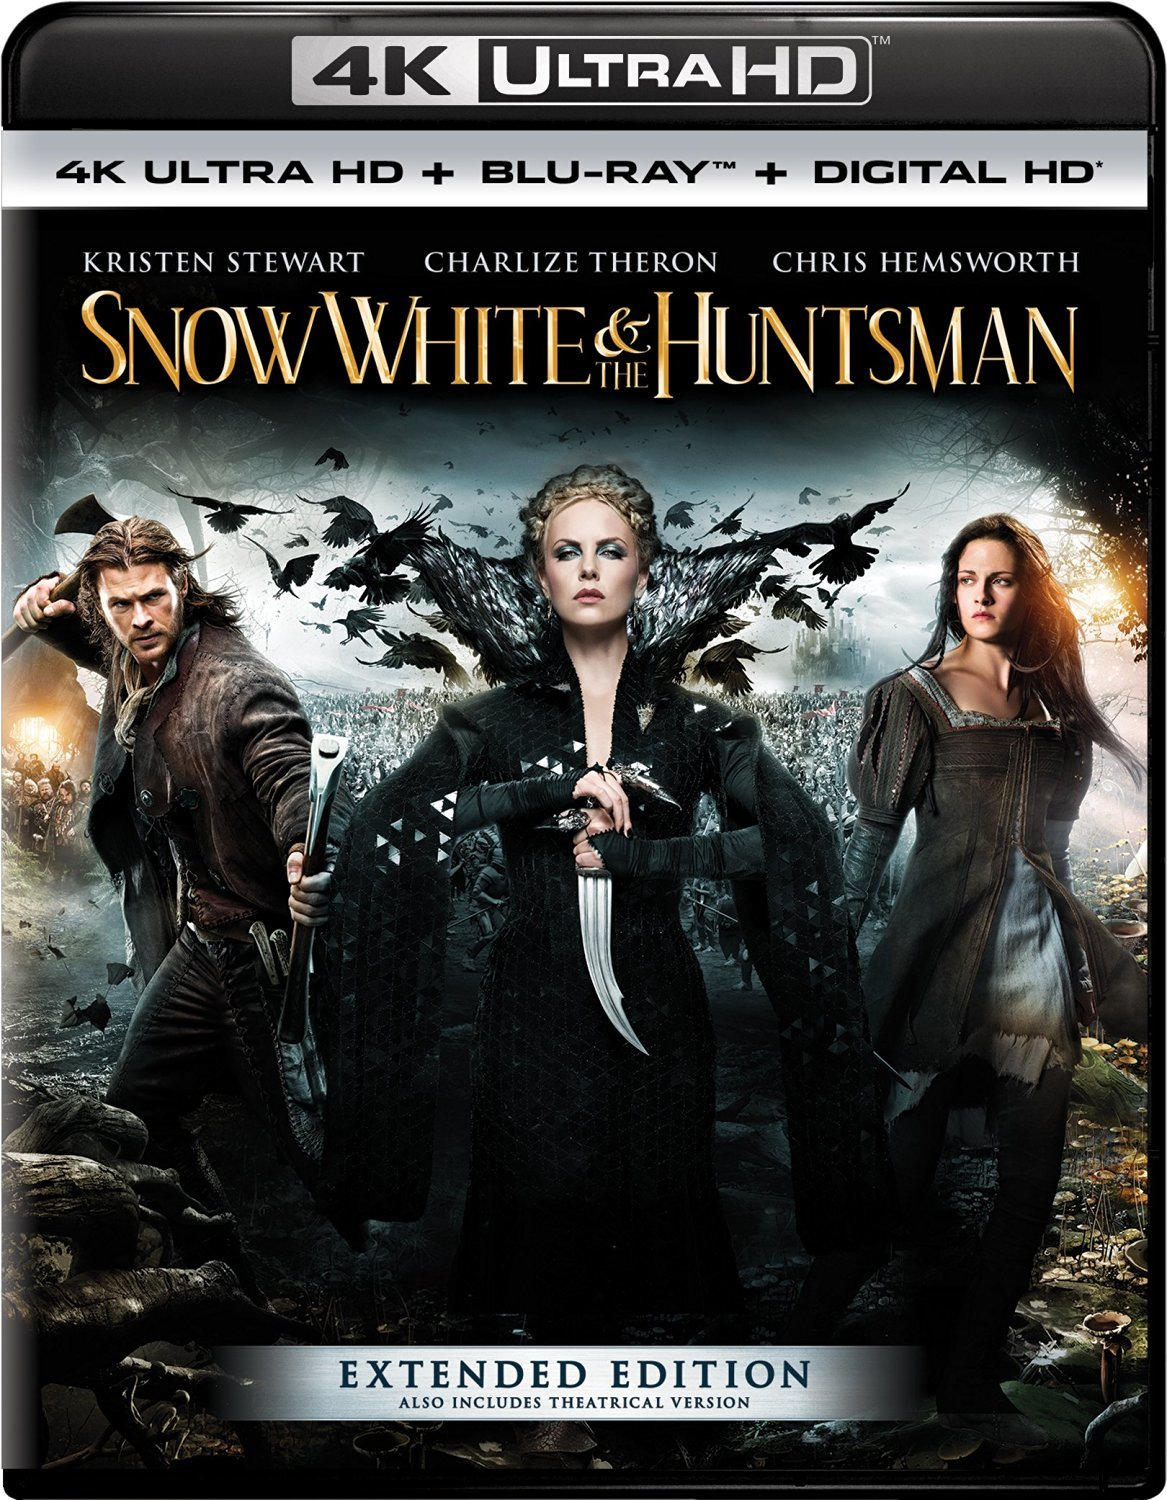 Snow White & the Huntsman - Extended Edition on Blu-ray, UHD Blu-ray image